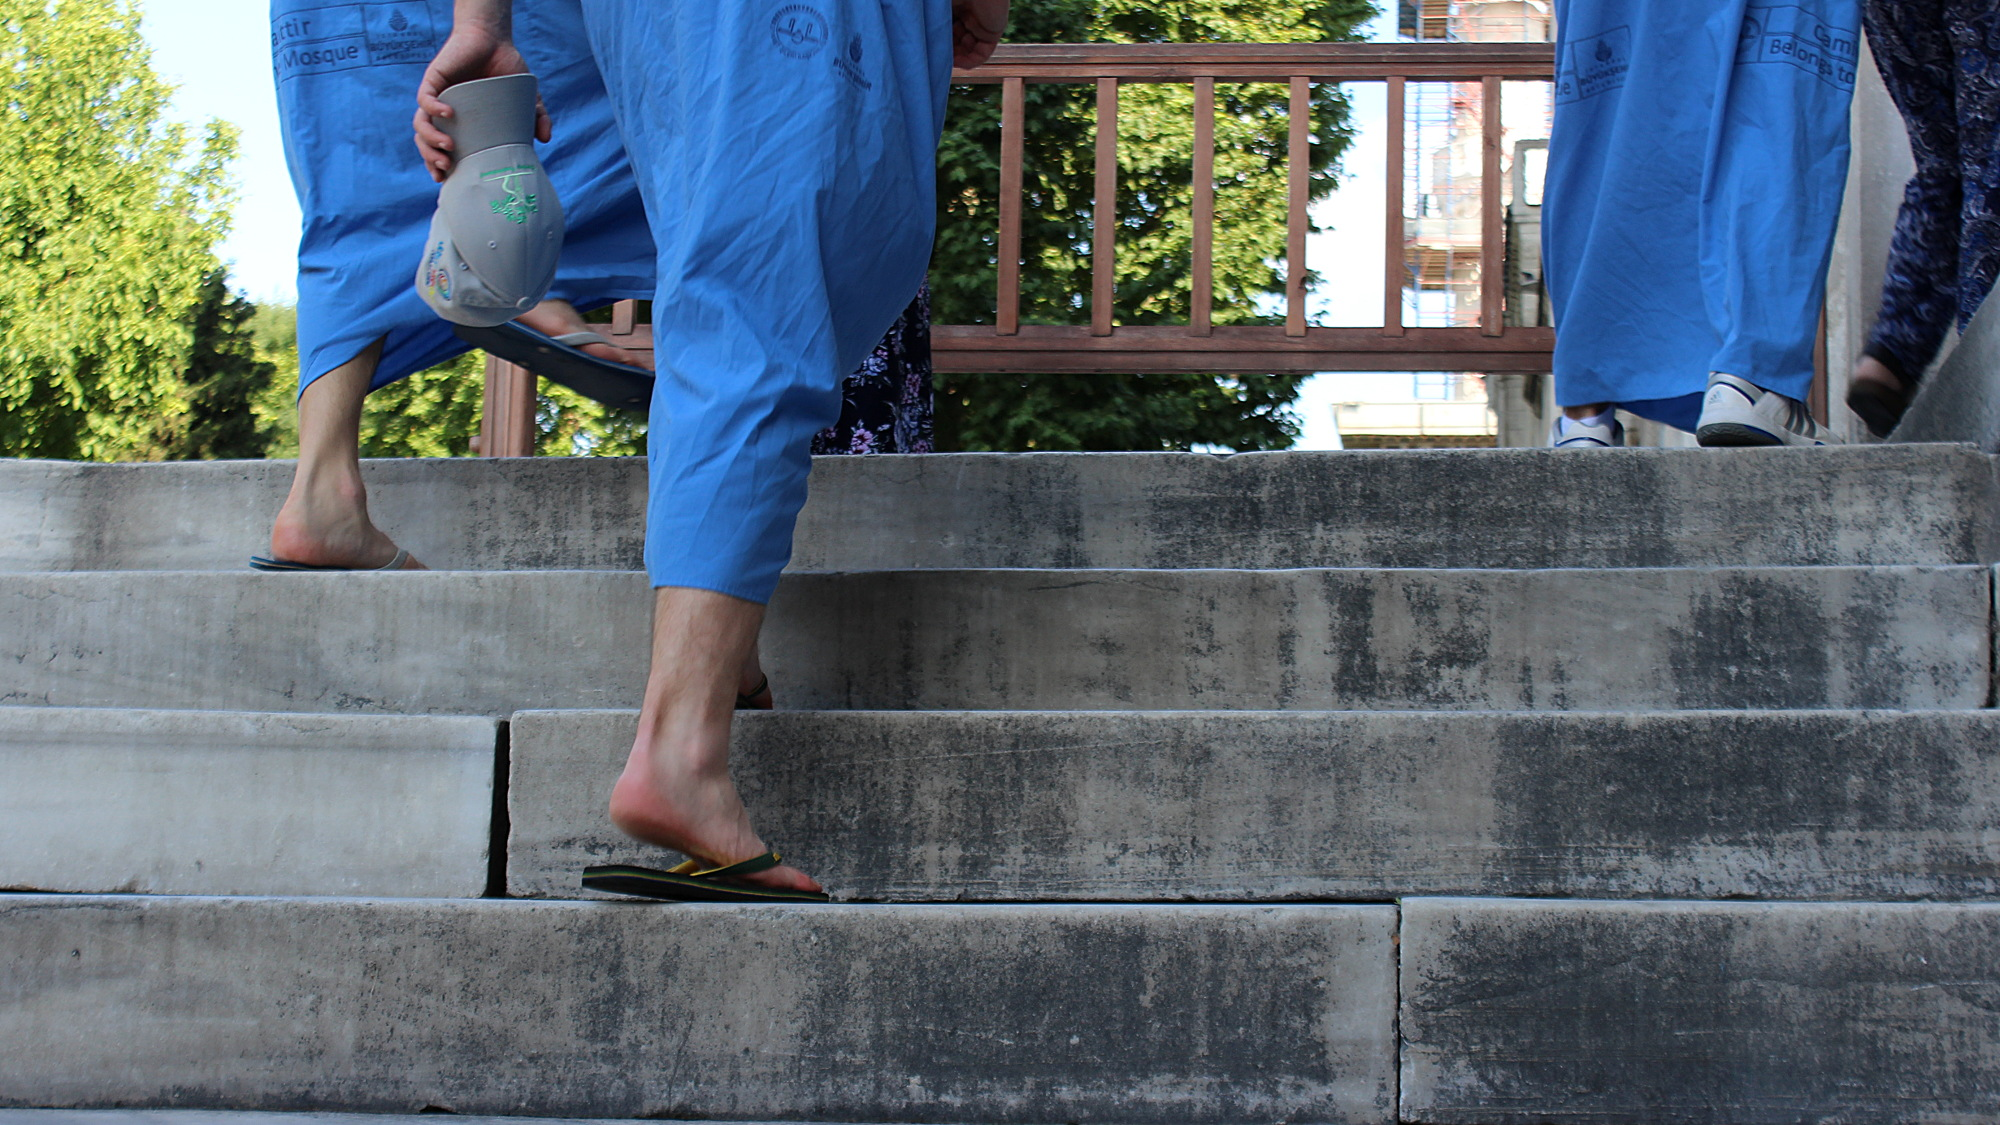 Entering blue mosque without shoes and shorts with blue dresses.